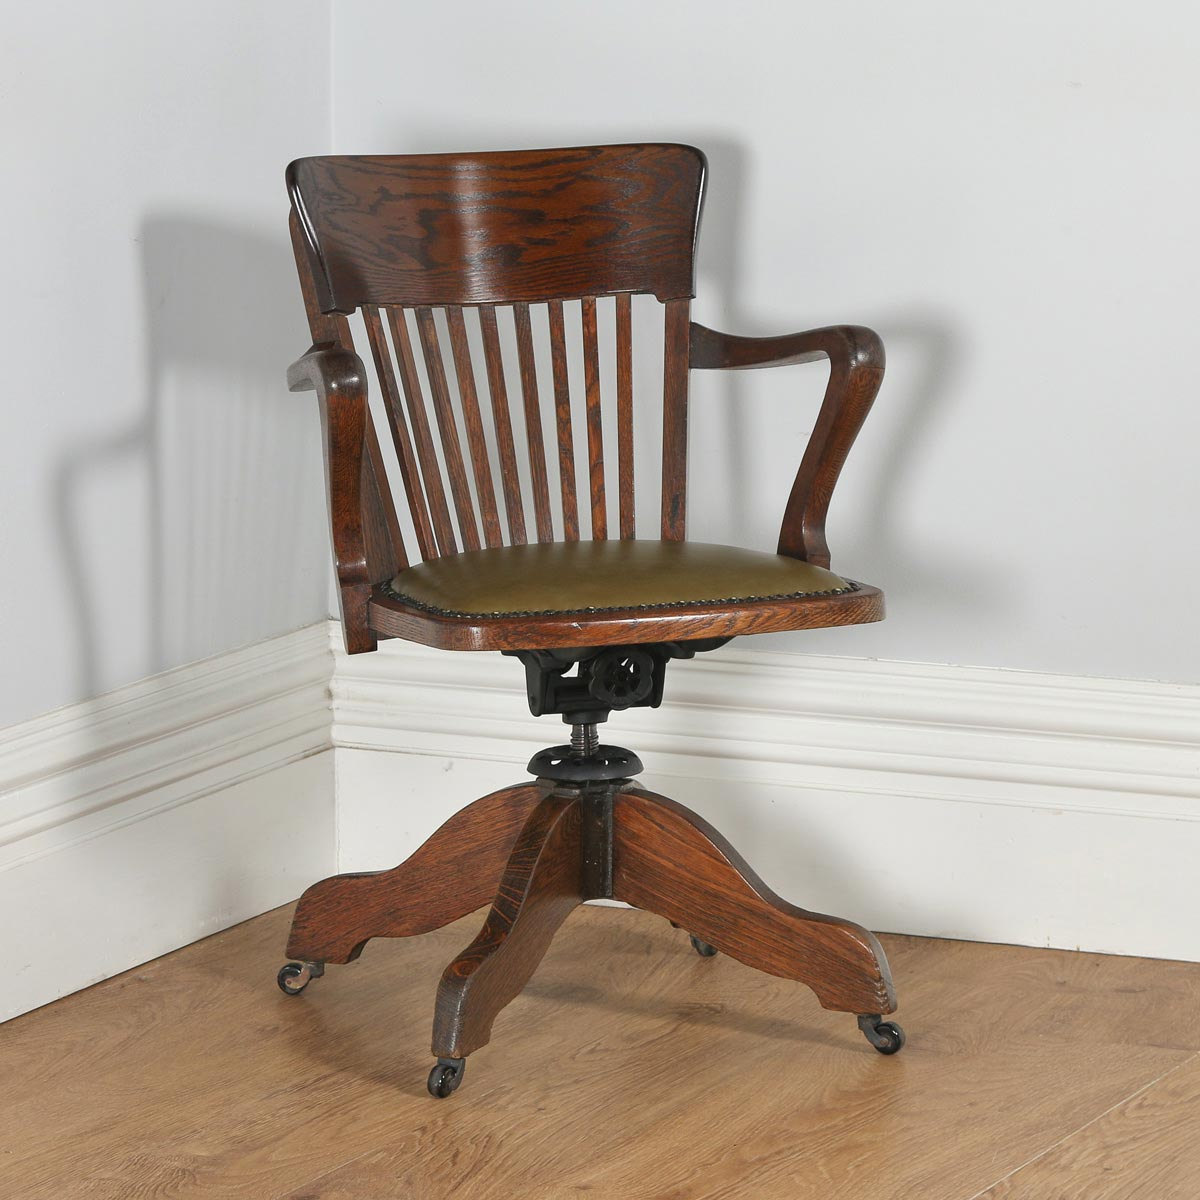 revolving chair for kitchen indoor rocking chairs antique english edwardian oak office desk arm